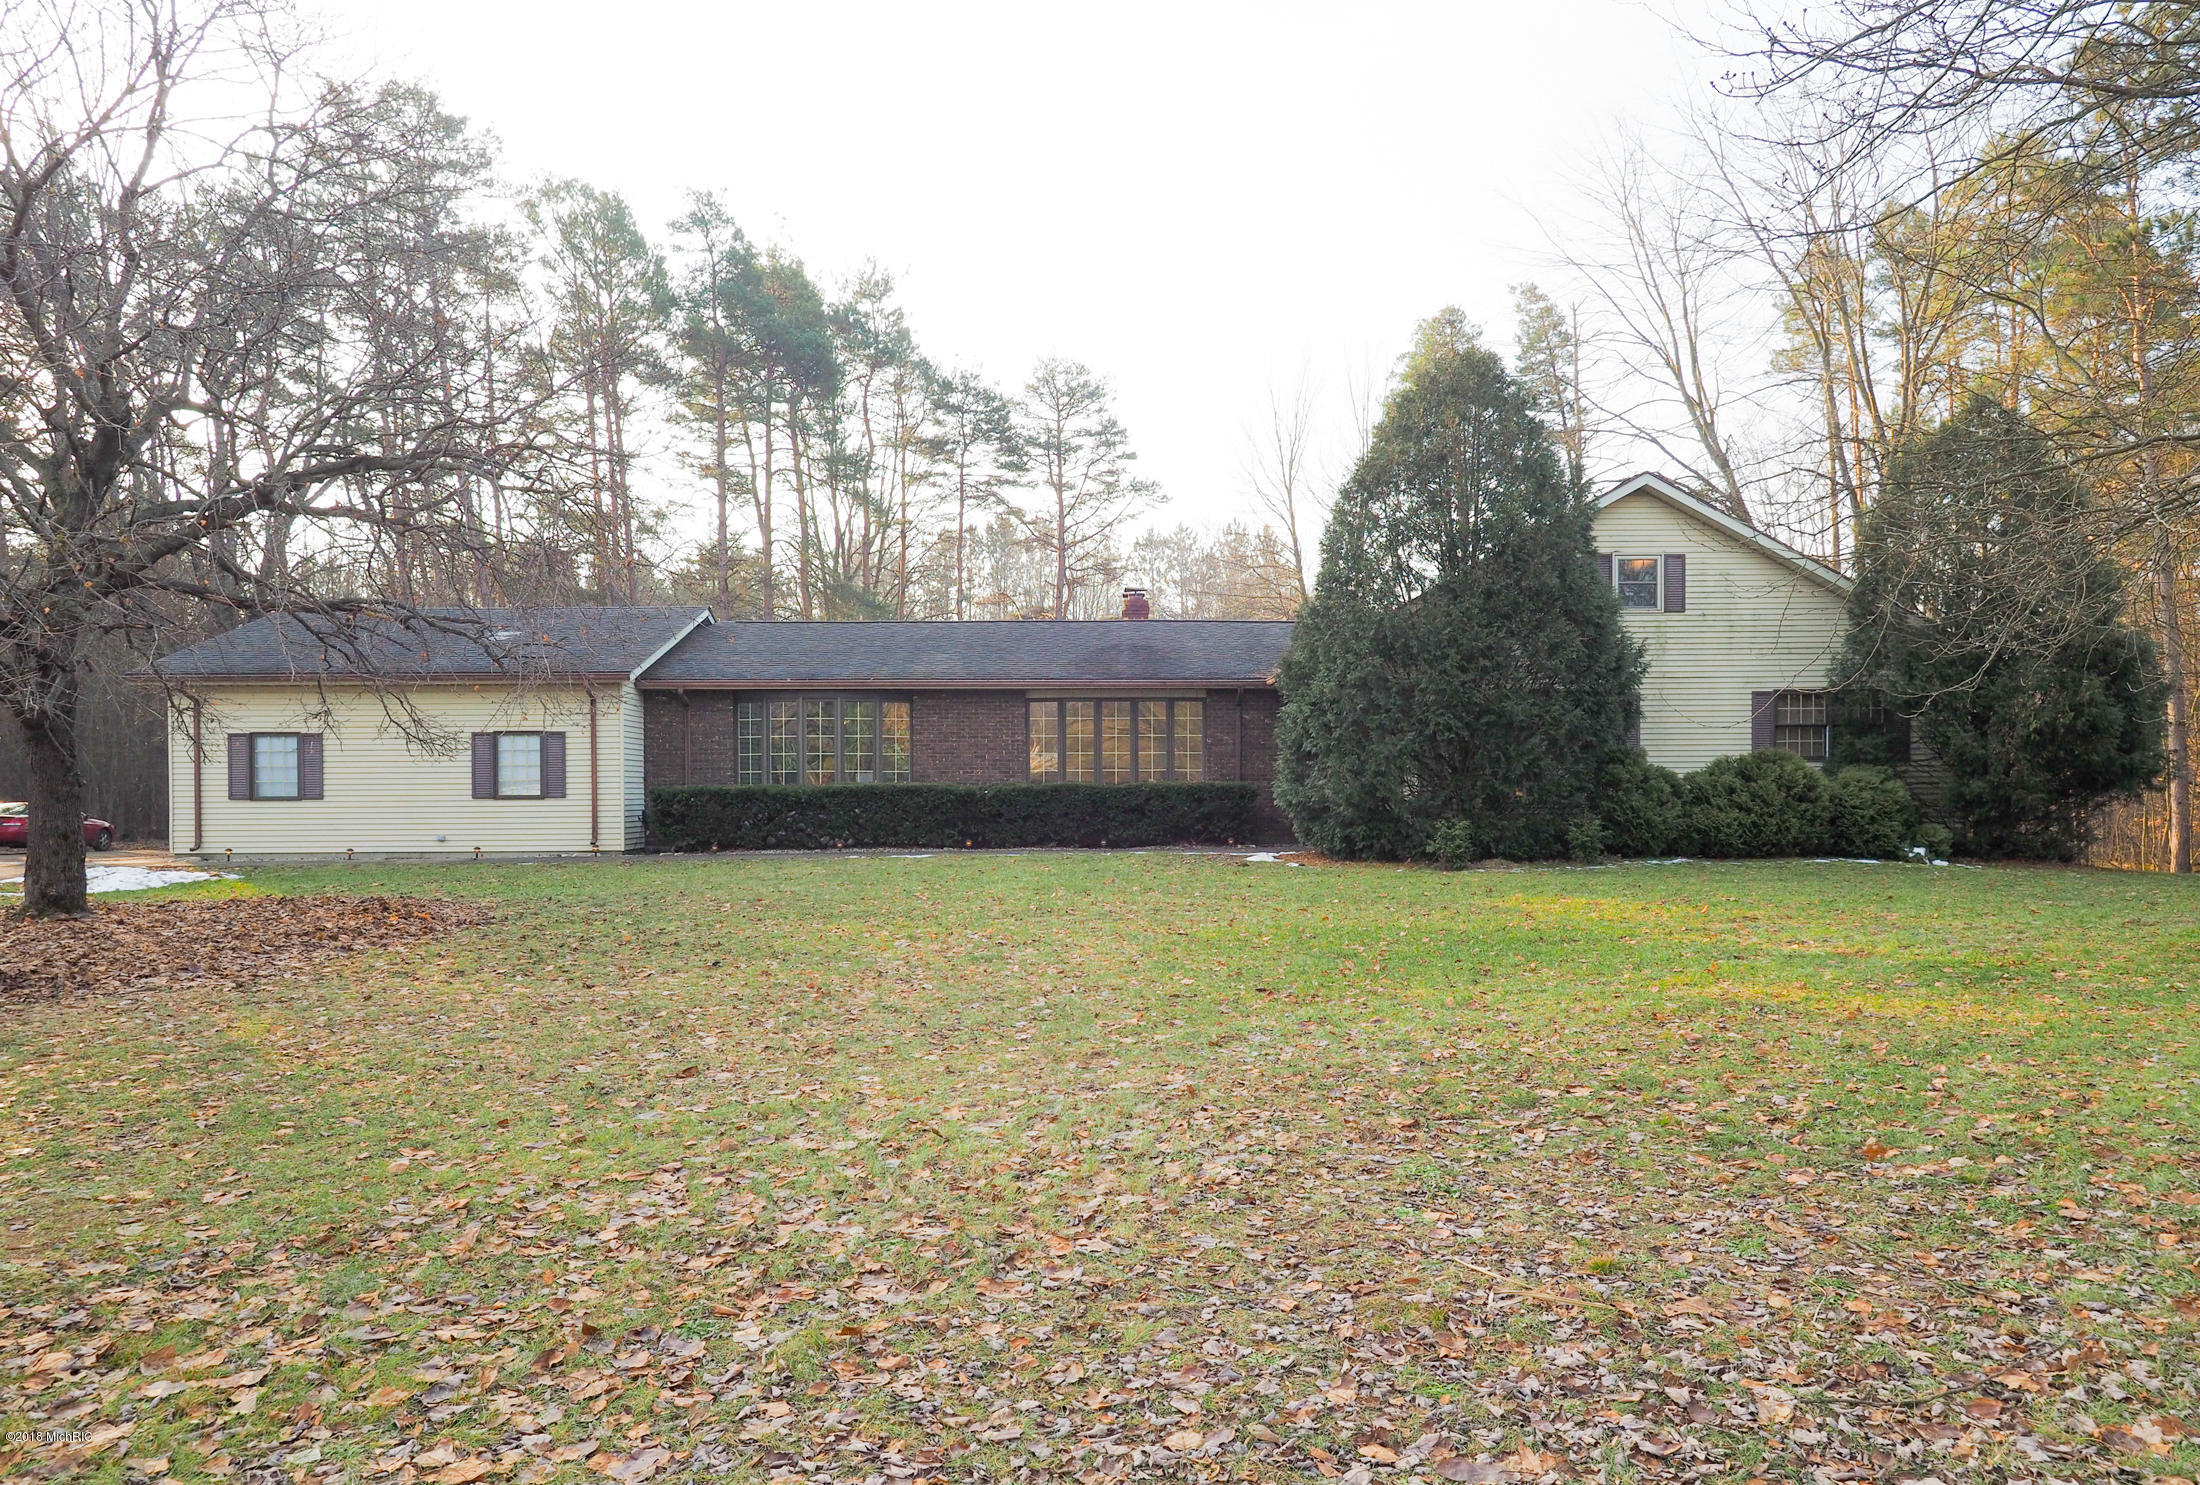 Photo for 34675 46th Avenue, Paw Paw, MI 49079 (MLS # 18058272)